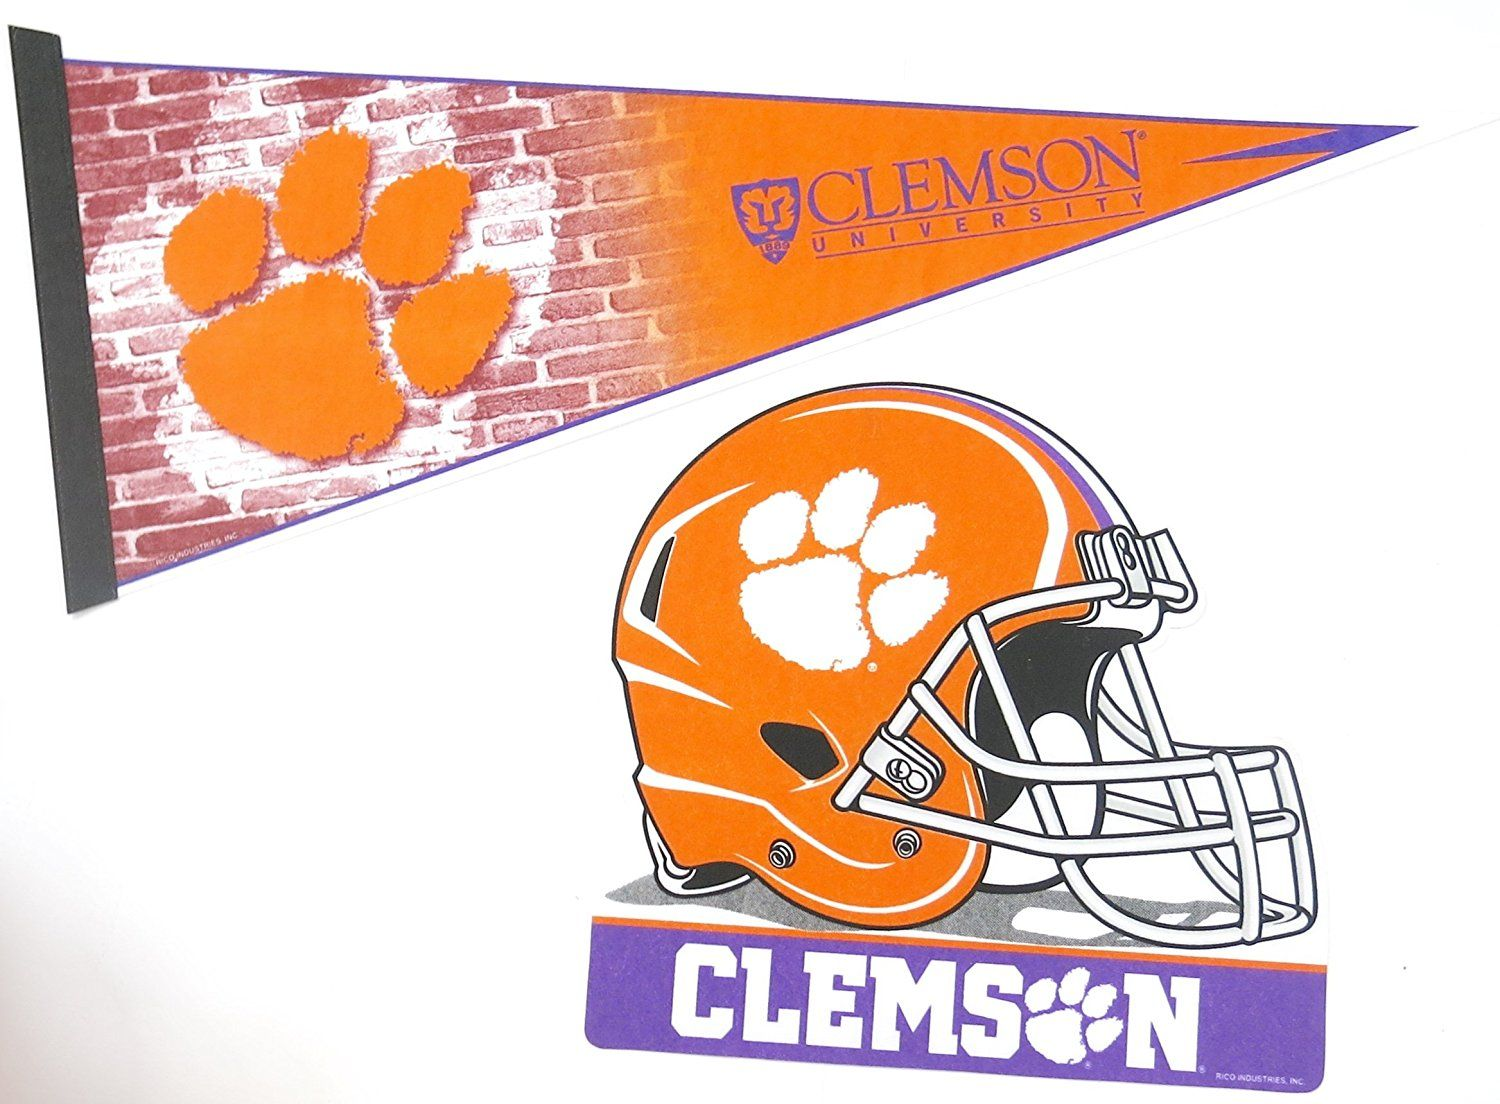 Clemson university nfl wall decor one 17 x 30 large pennant clemson university nfl wall decor one 17 x 30 large pennant design and 12x 12 one helmet design you can find more details by visiting the image amipublicfo Image collections